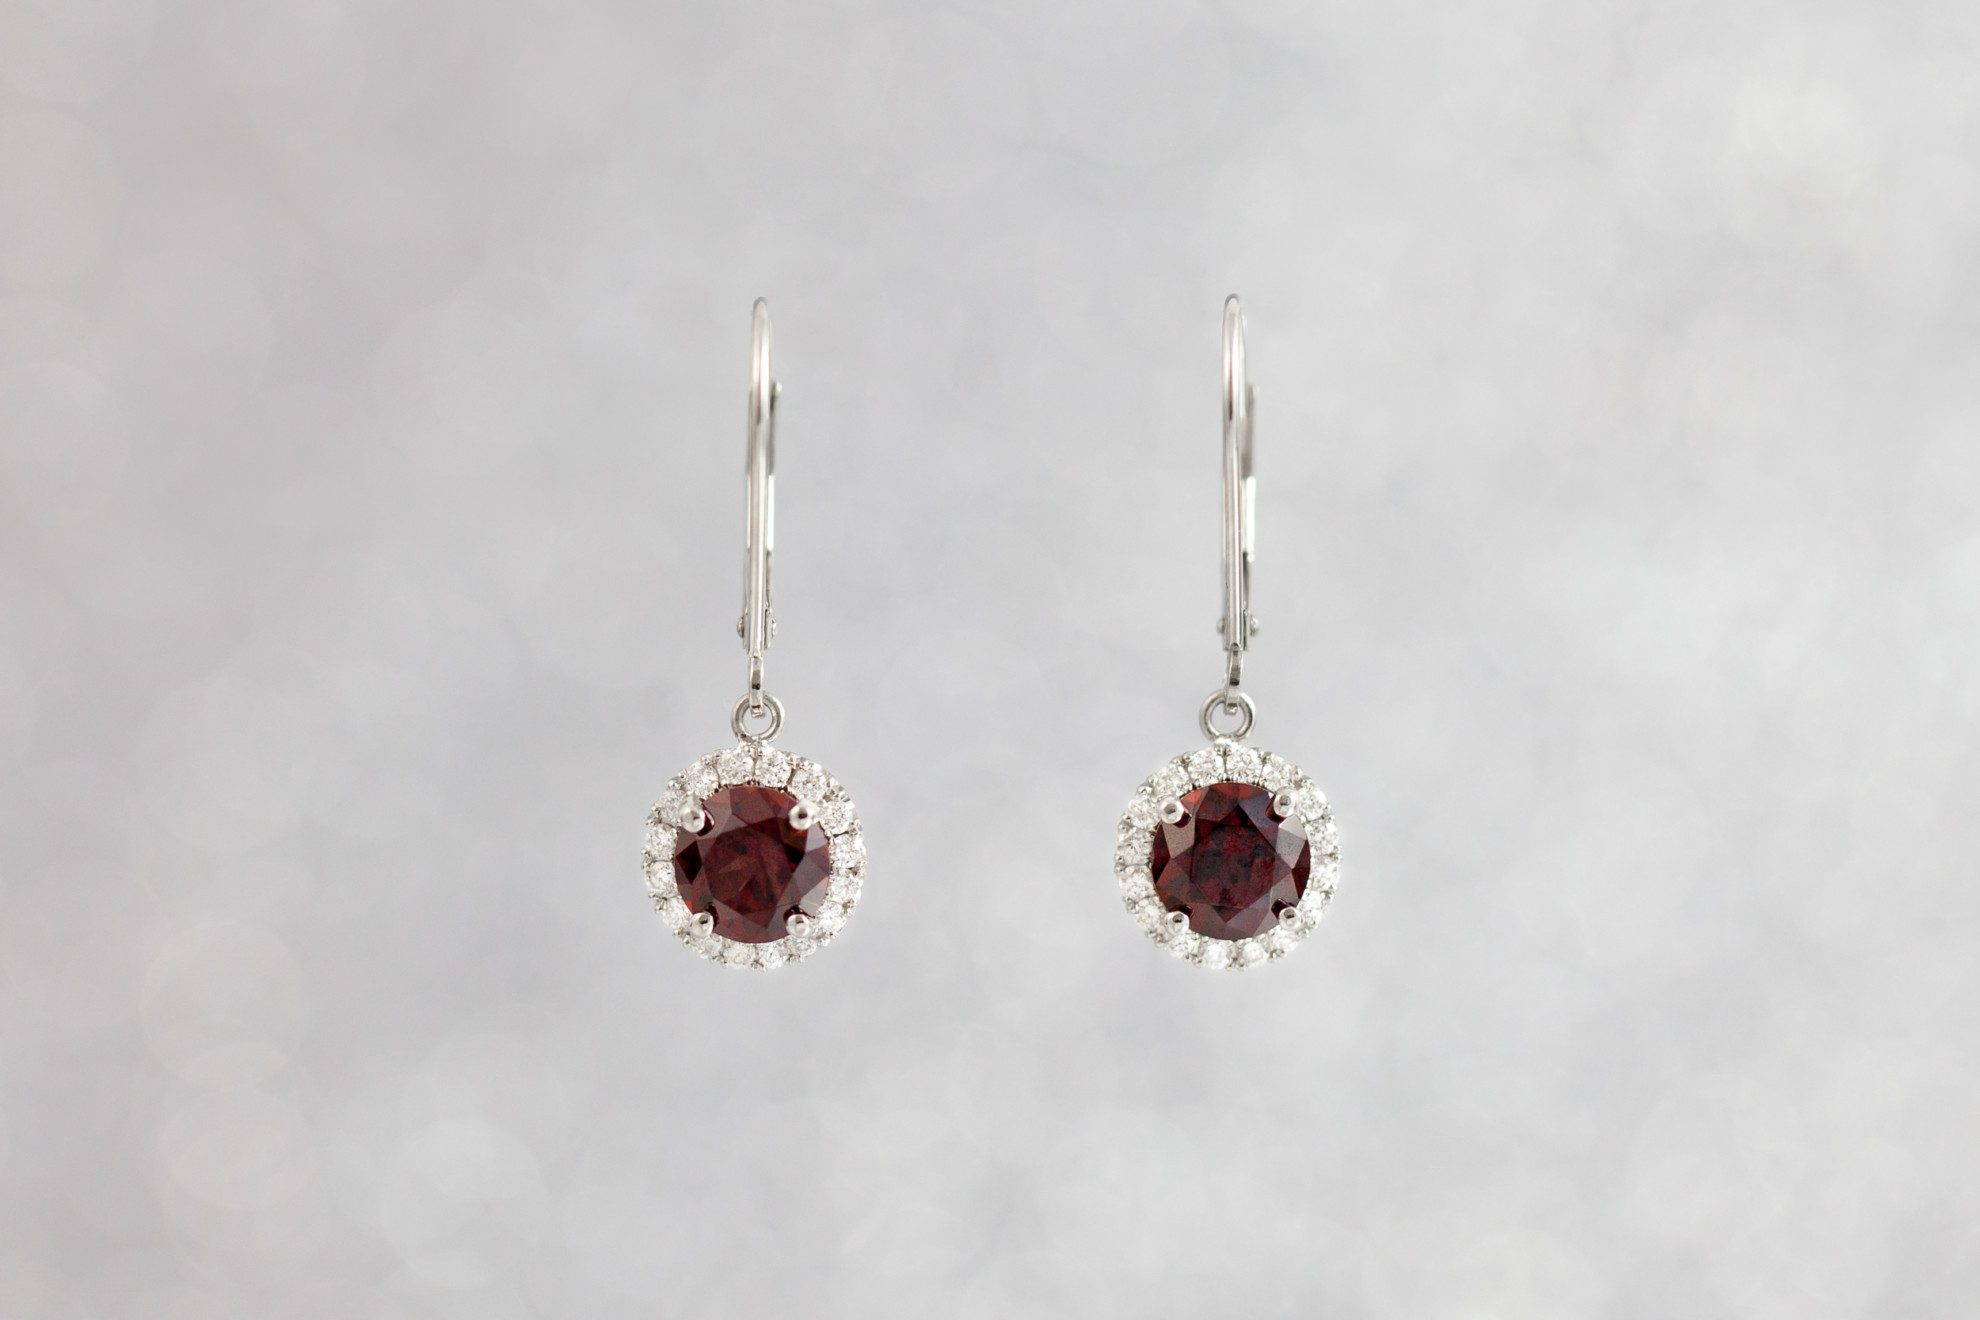 tsavourite earrings ear products earring jackets emerald carrie k heritage and in rhodolite garnet